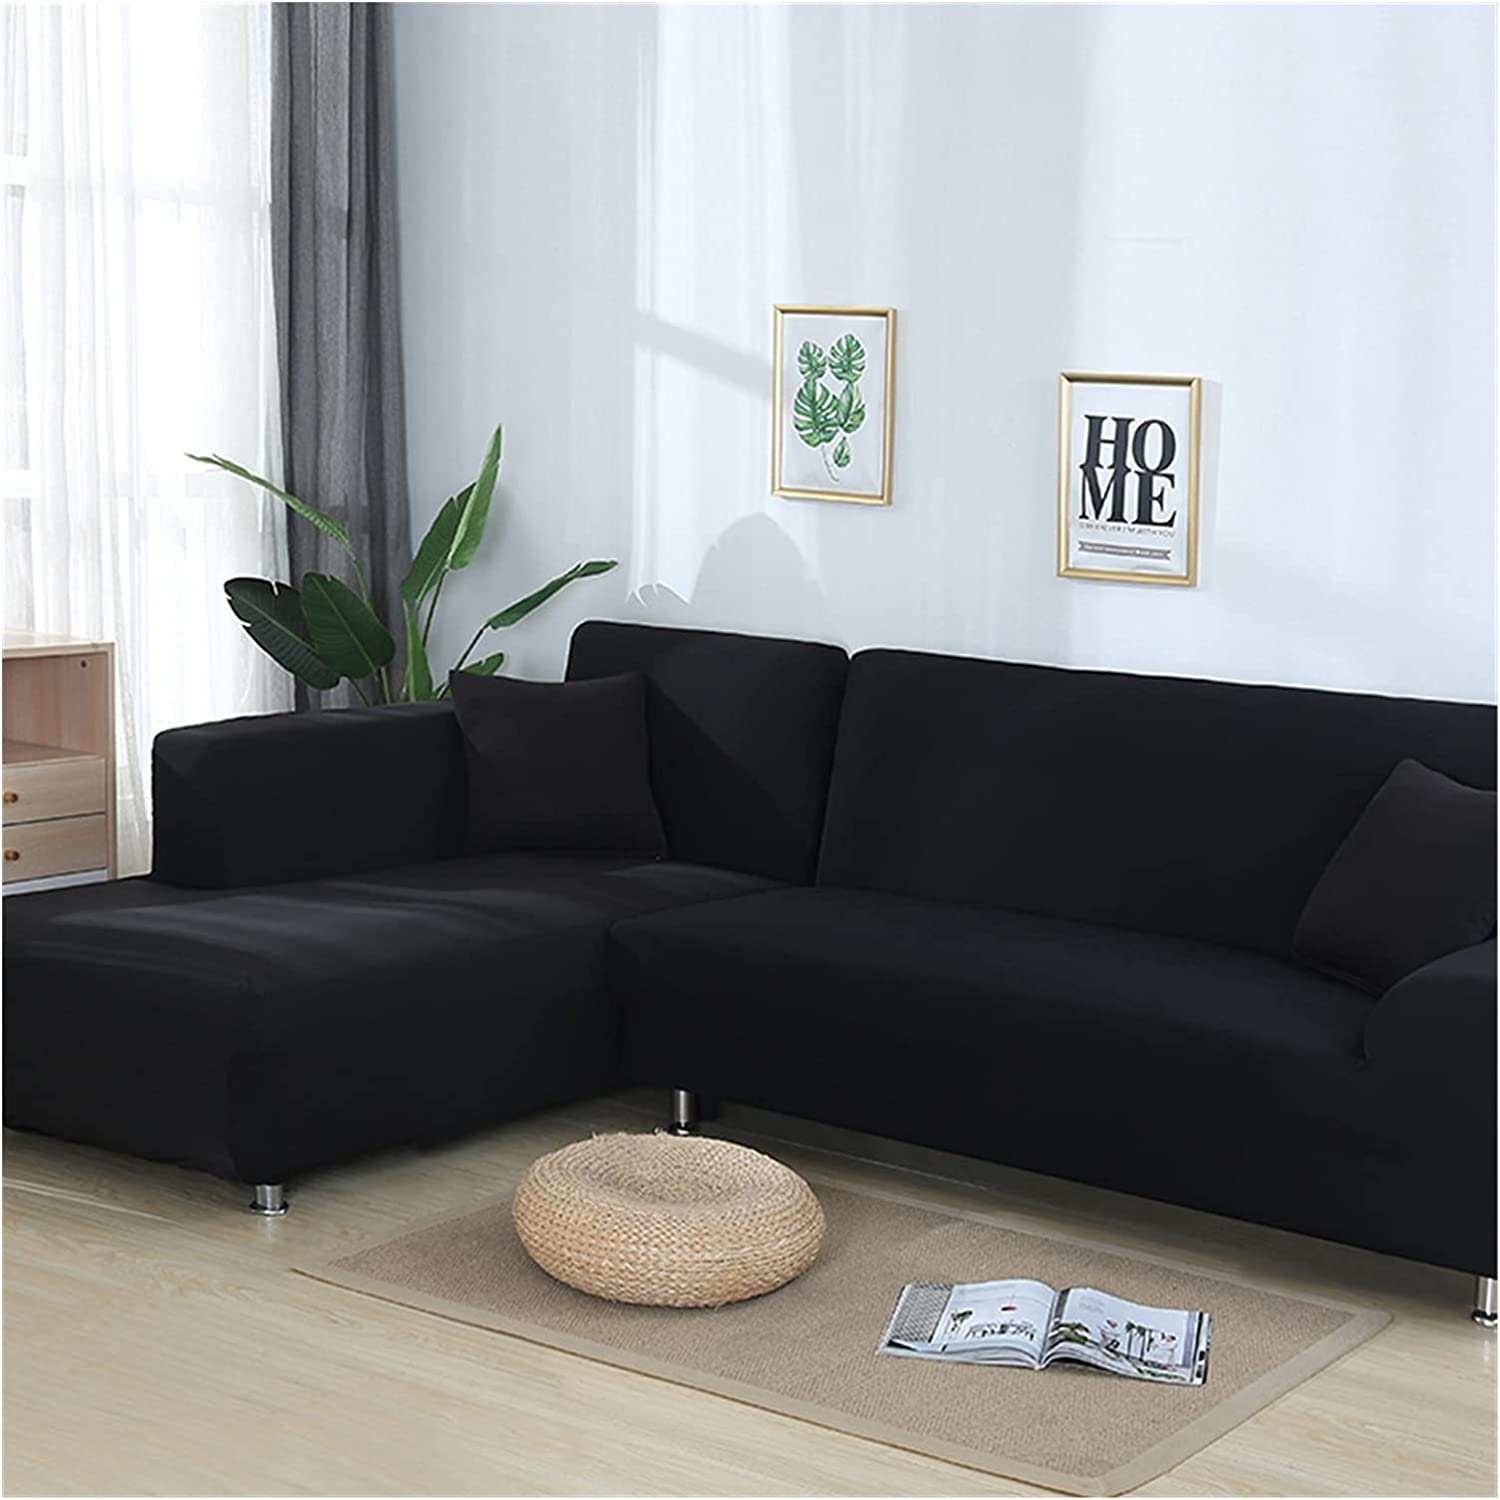 JDKJ Corner Sofa Covers for Elastic Living Slipcovers Couch Spring new work one after another Sale price Room